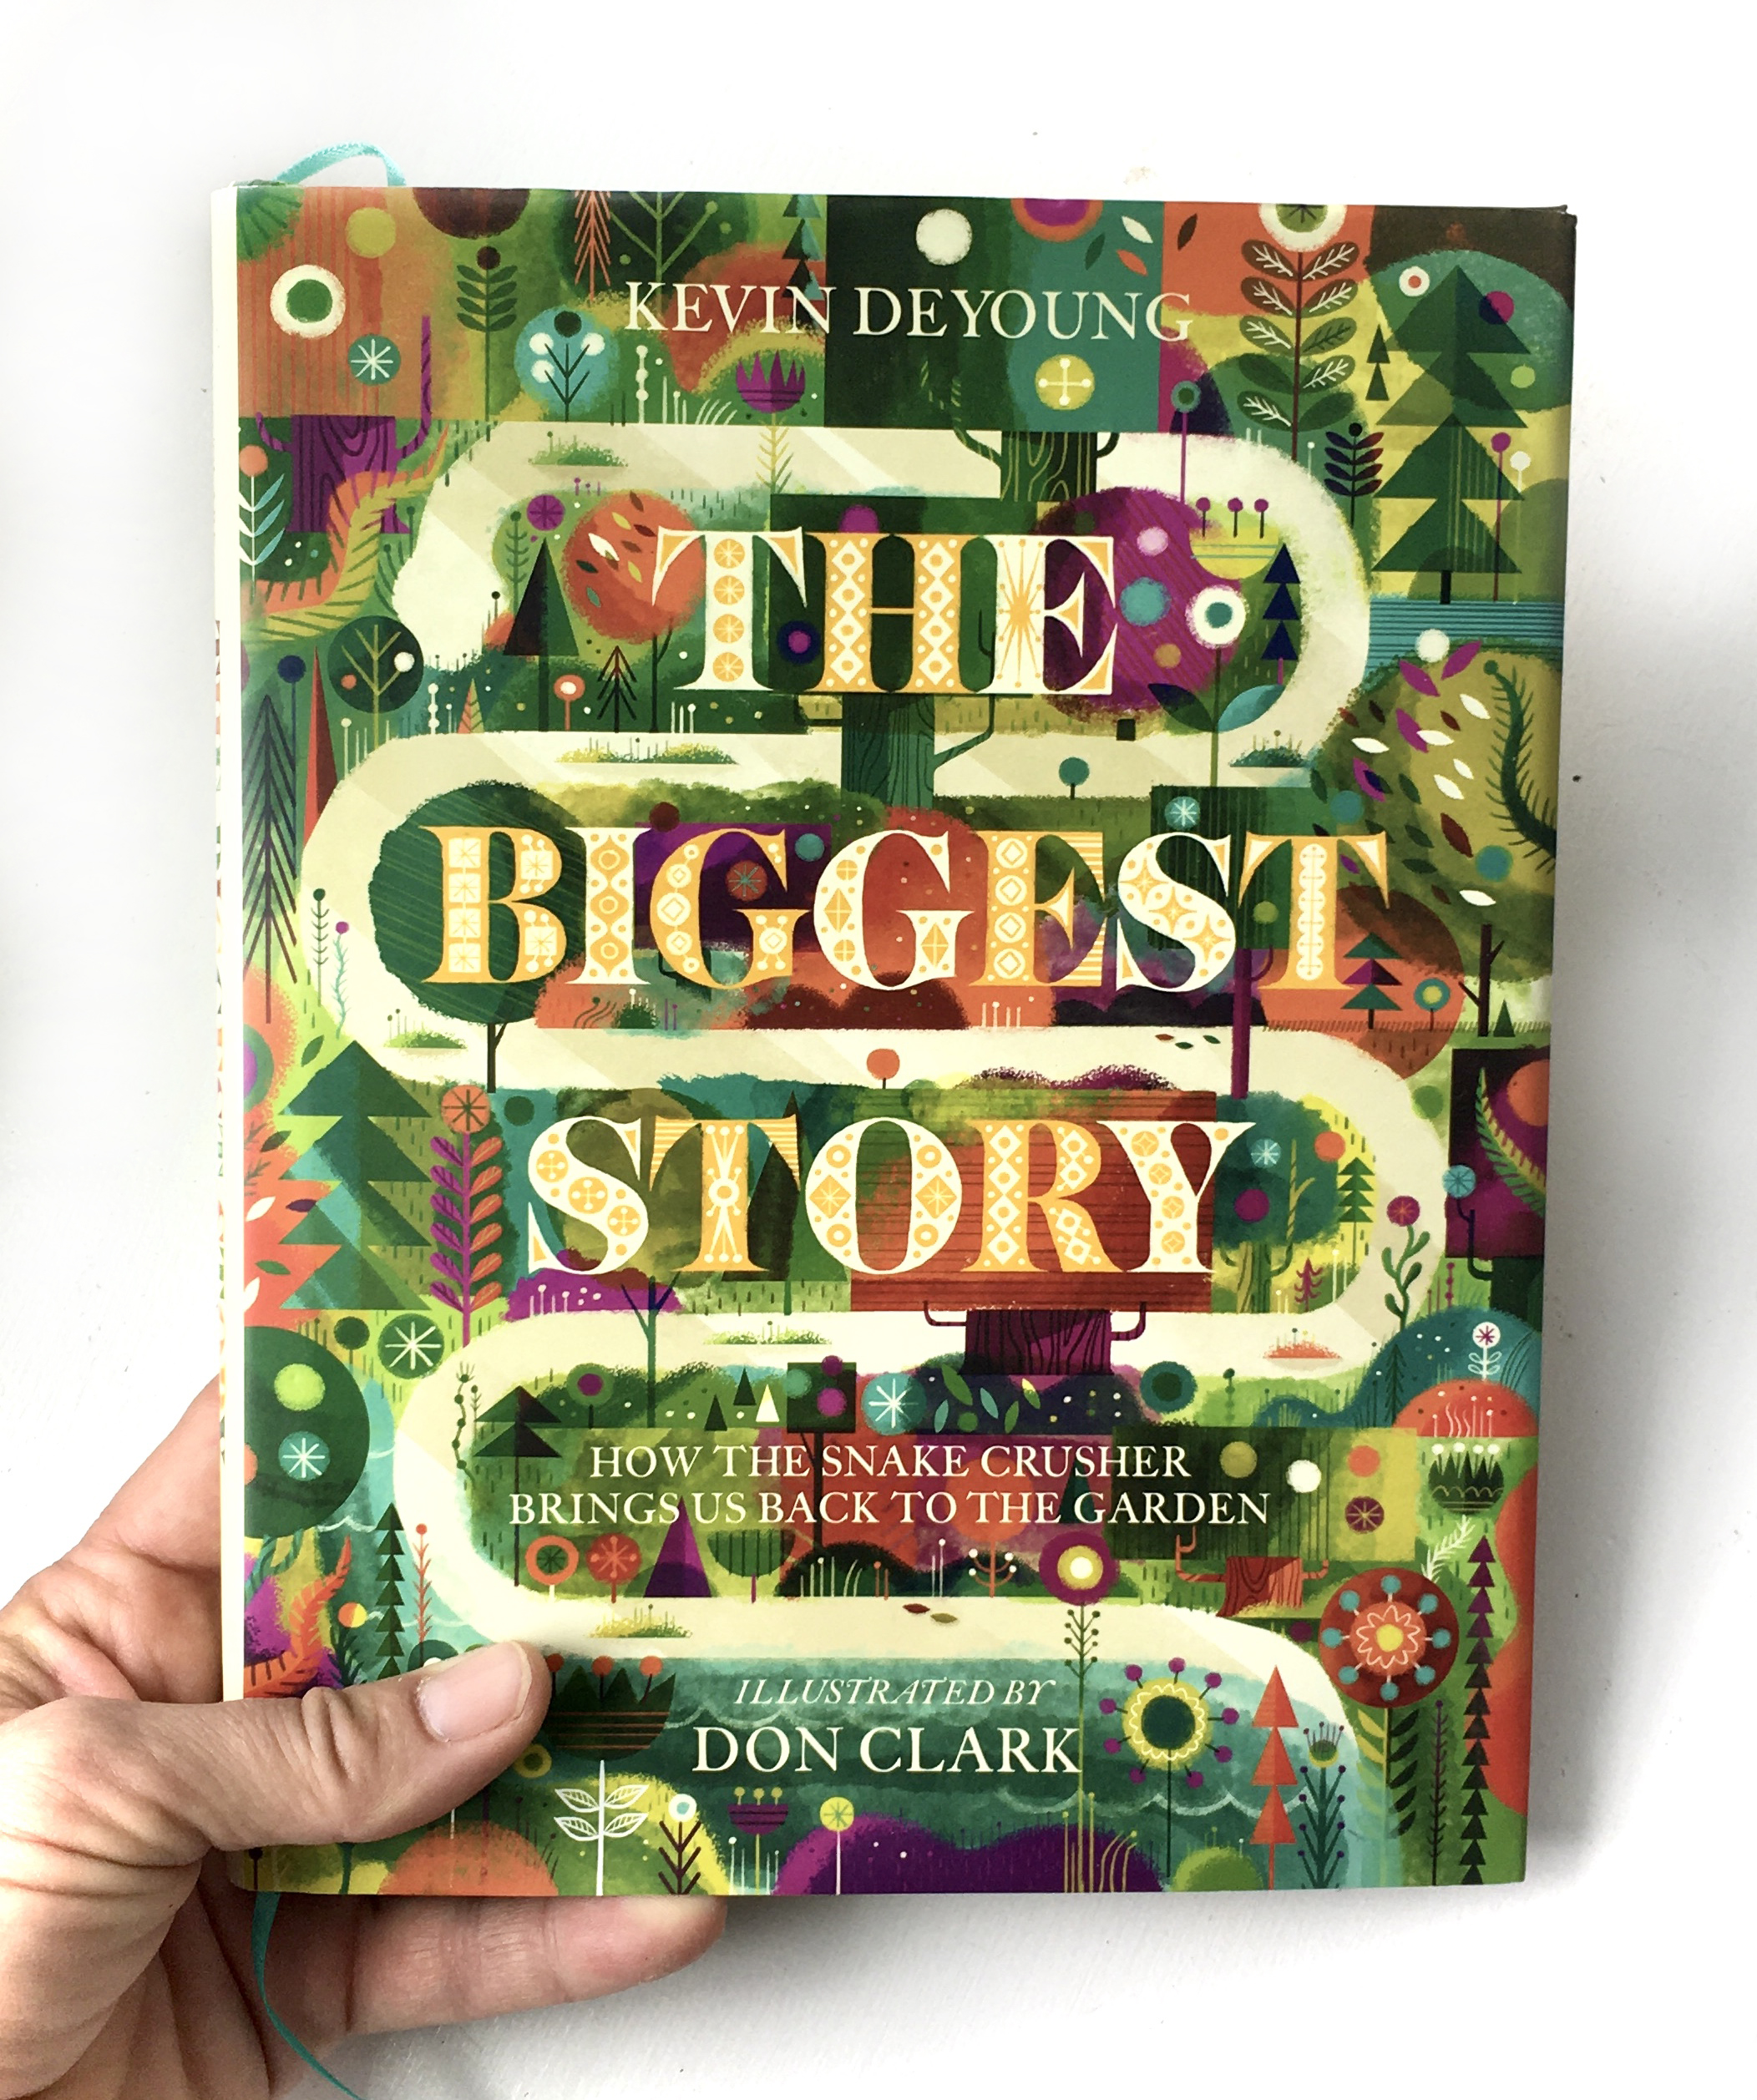 The Biggest Story: A Book Review